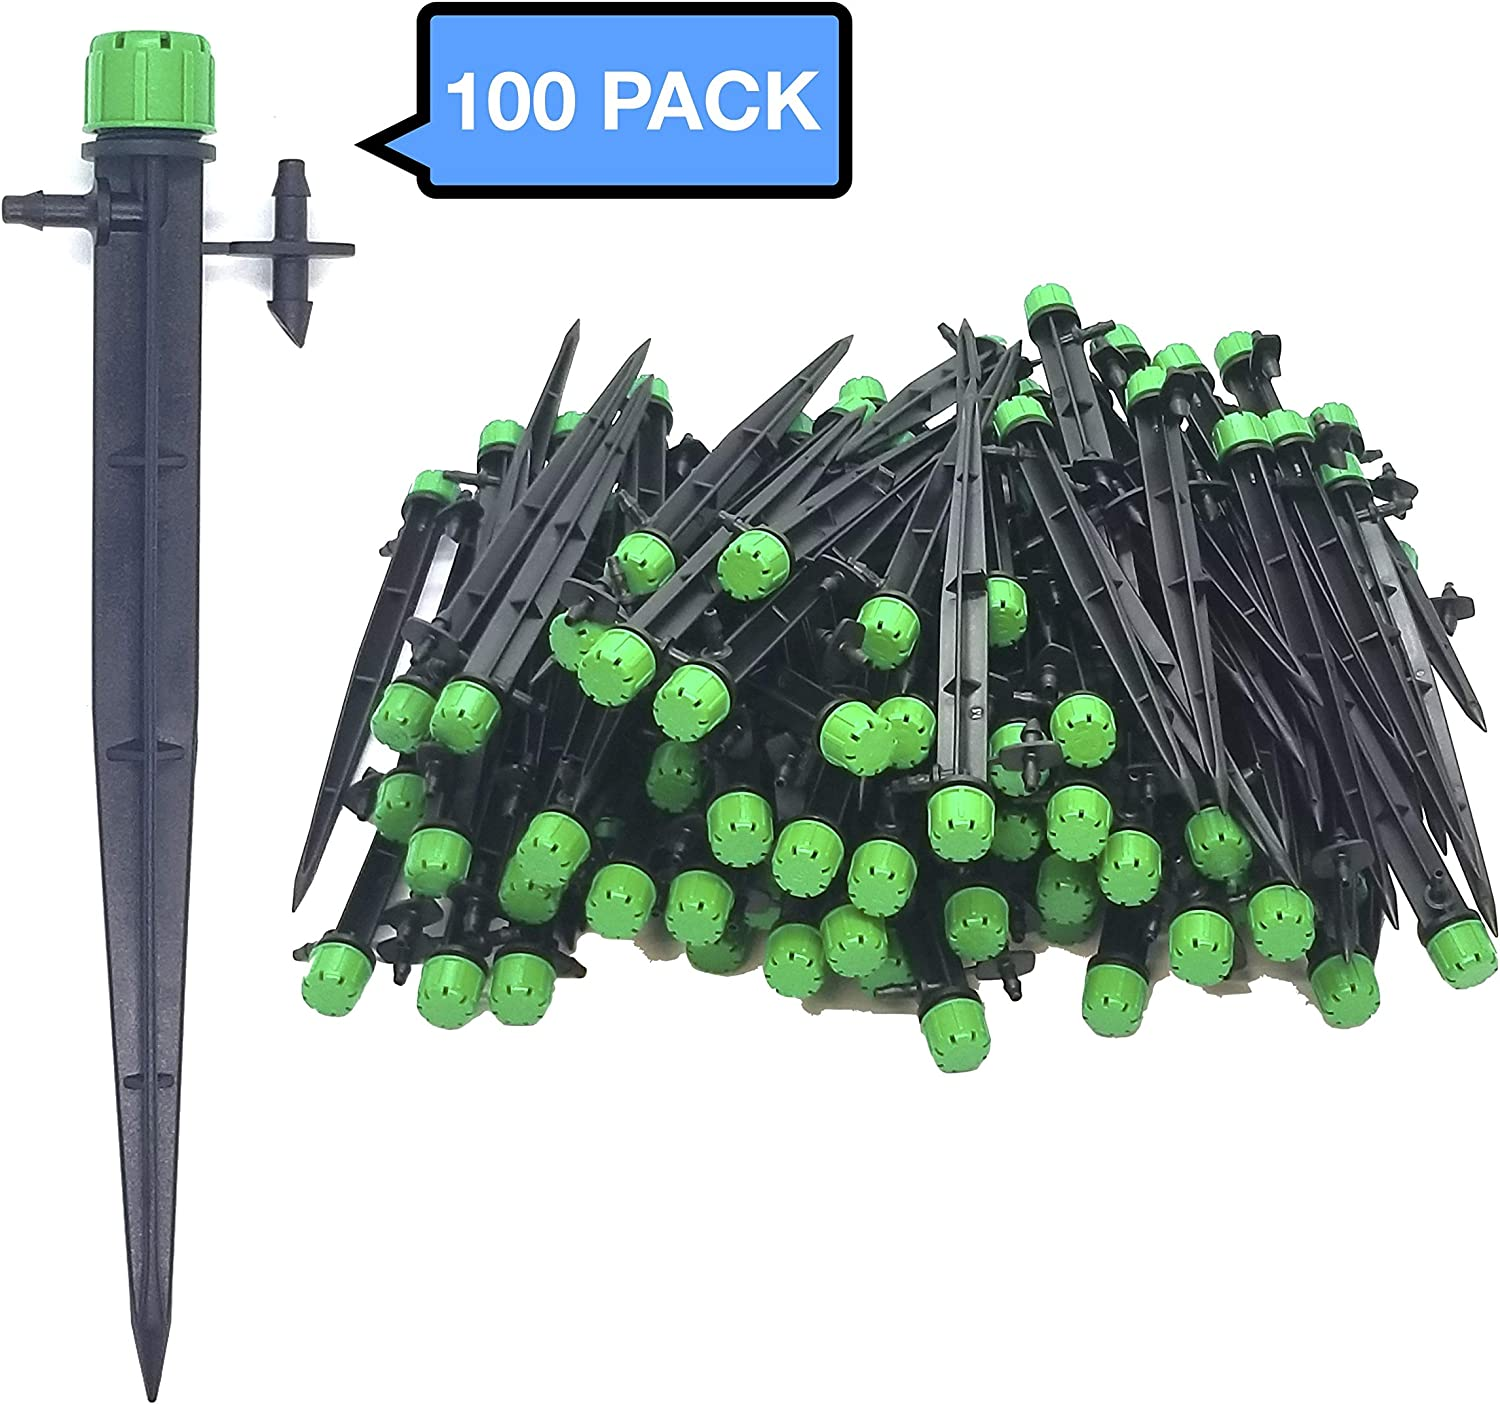 "(100-PACK) - 1/4"" Inch Universal 360 Degree Drip Emitter auf 6"" Stake - Adjustable Flow 0-18.5 GPH passen 1/4 (4-7mm) Drip Irrigation Tubing - Professional Grade Drippers for Drip Irrigation"